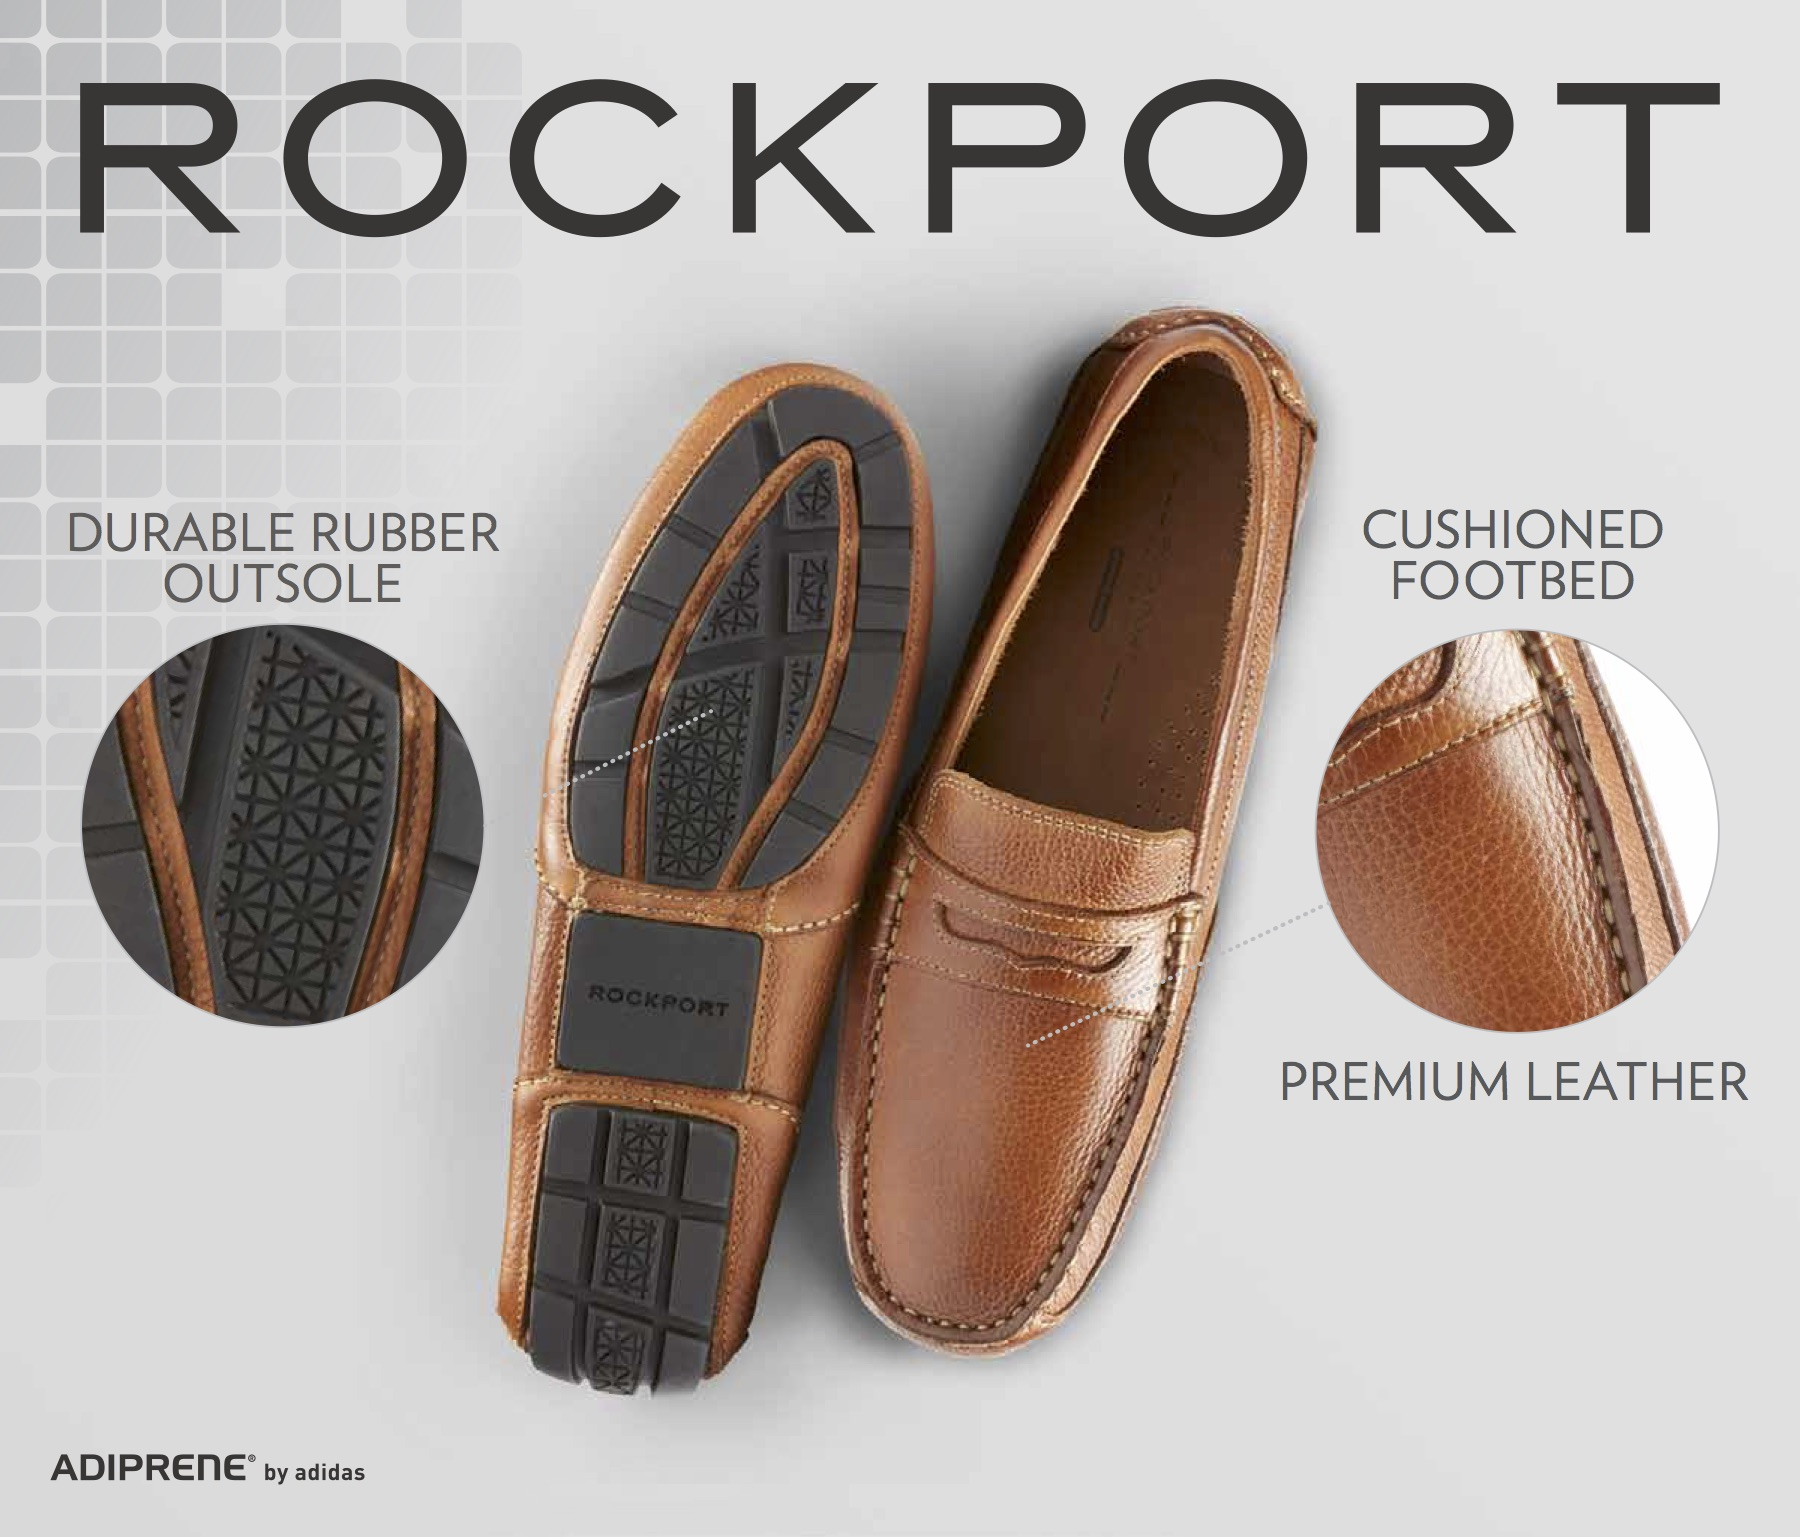 ROCKPORT_SS15_13289_M_DillardsVisualRefresh_Magnets_V2.jpg